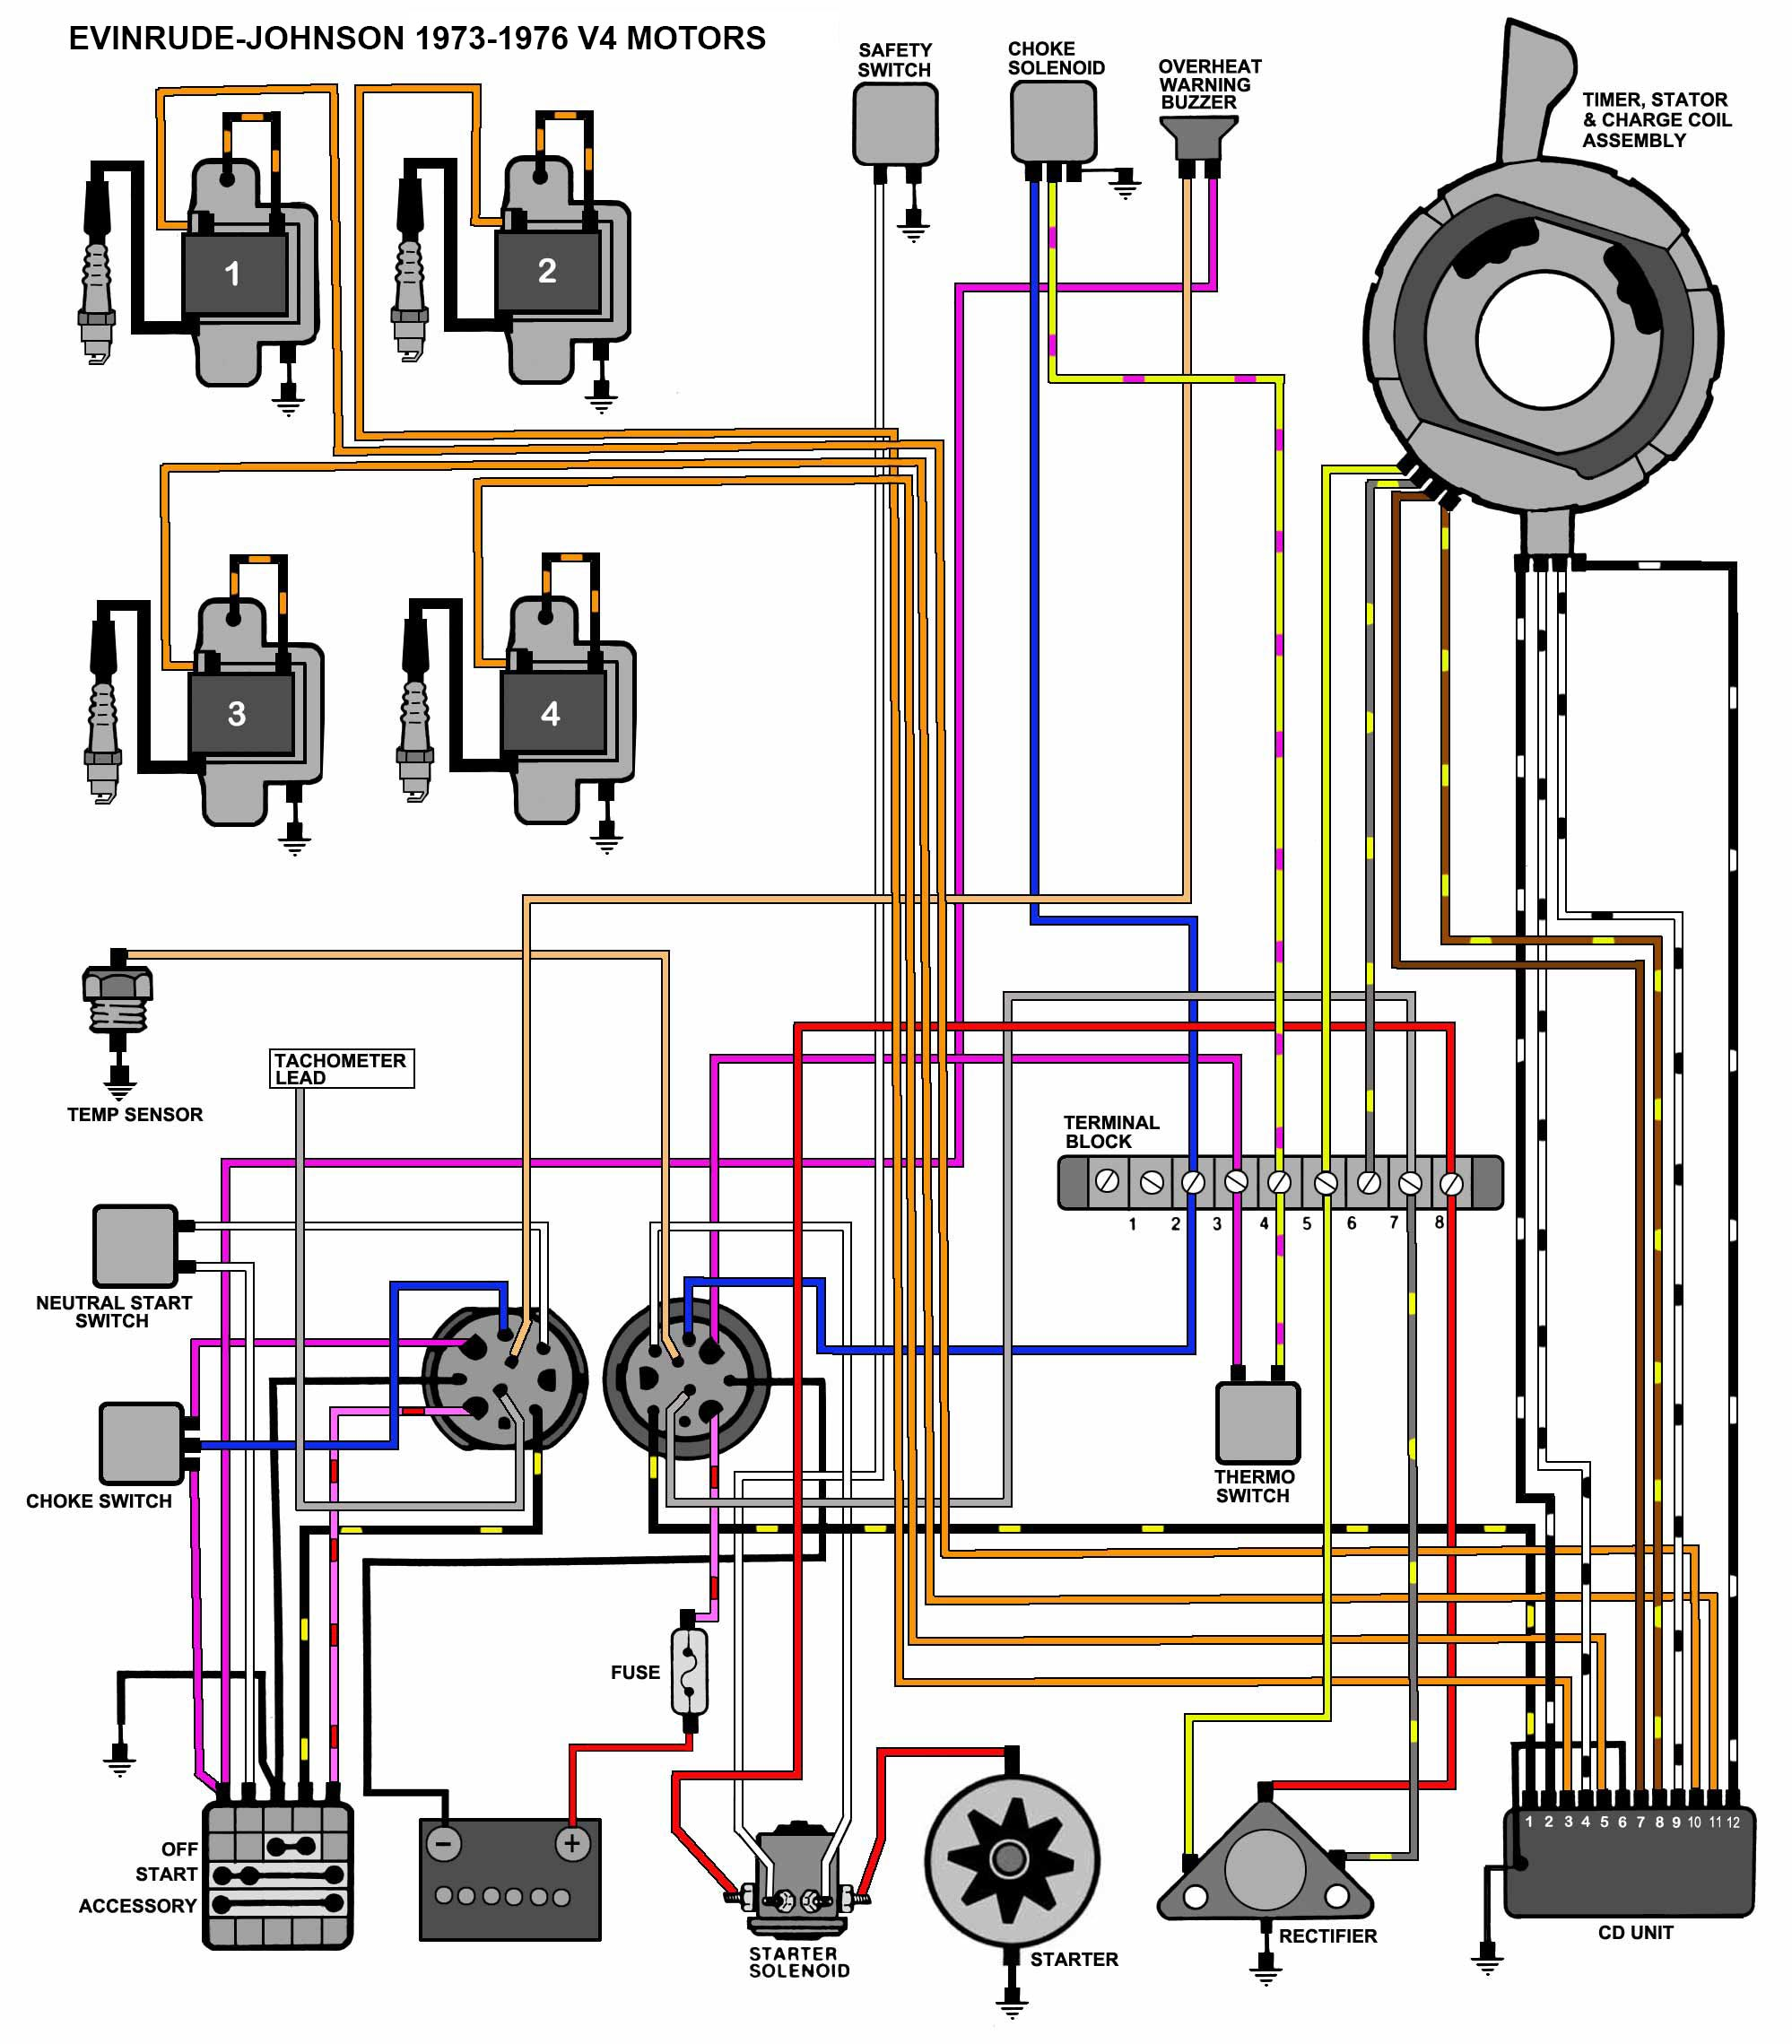 Evinrude Johnson Outboard Wiring Diagrams Mastertech Marine 67 John Deere 110 Diagram V 4 Motors